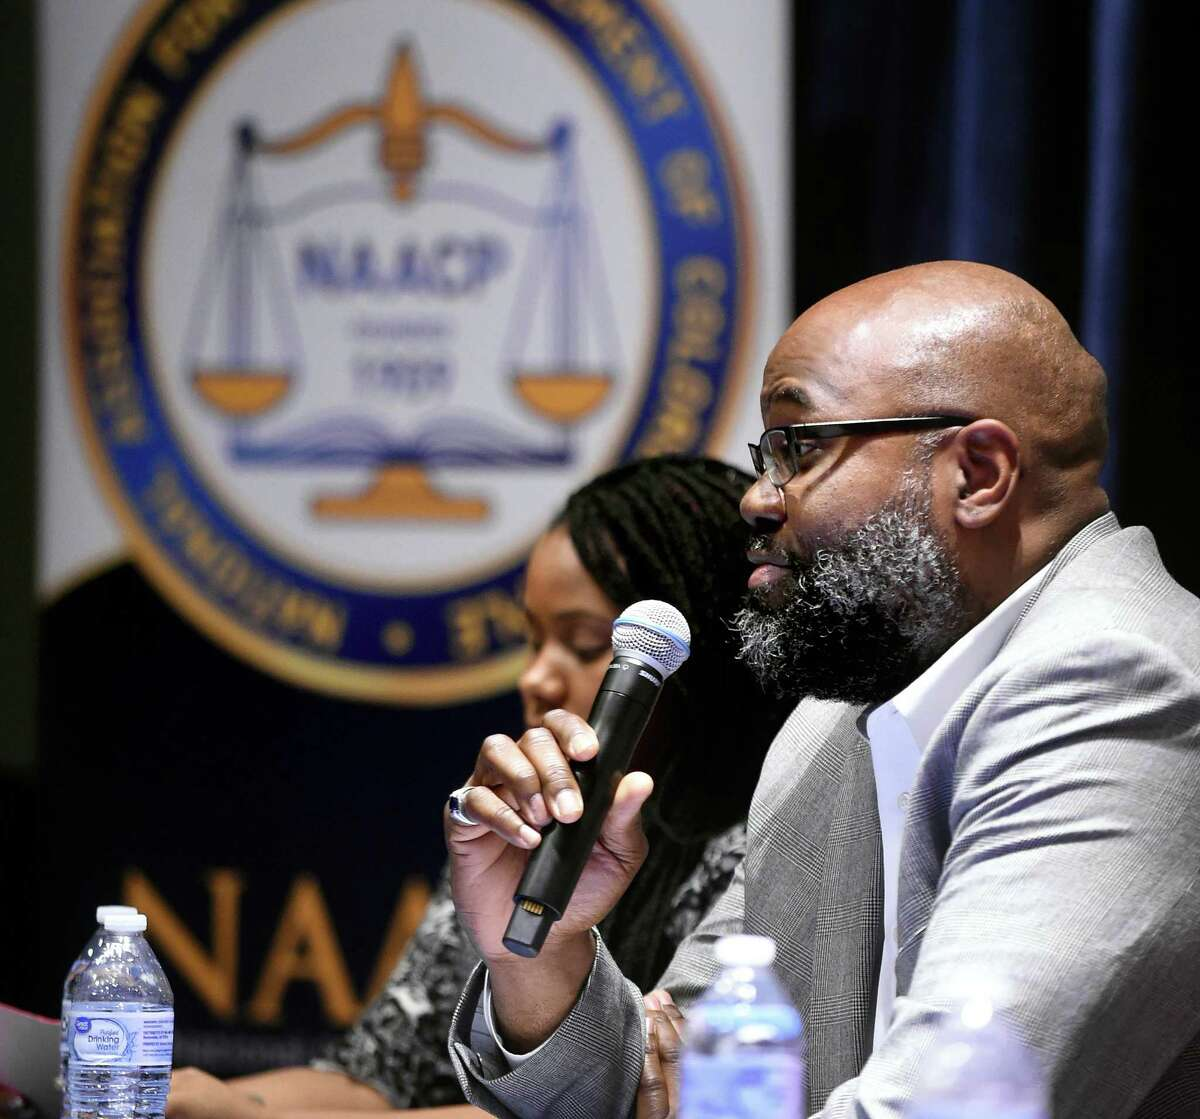 """David Canton, associate professor of history and director of Africana Studies at Connecticut College, speaks during a panel discussion at the """"Know Your Rights/Right to Protest"""" event hosted by the New Haven branch of the NAACP at Southern Connecticut State University in New Haven."""